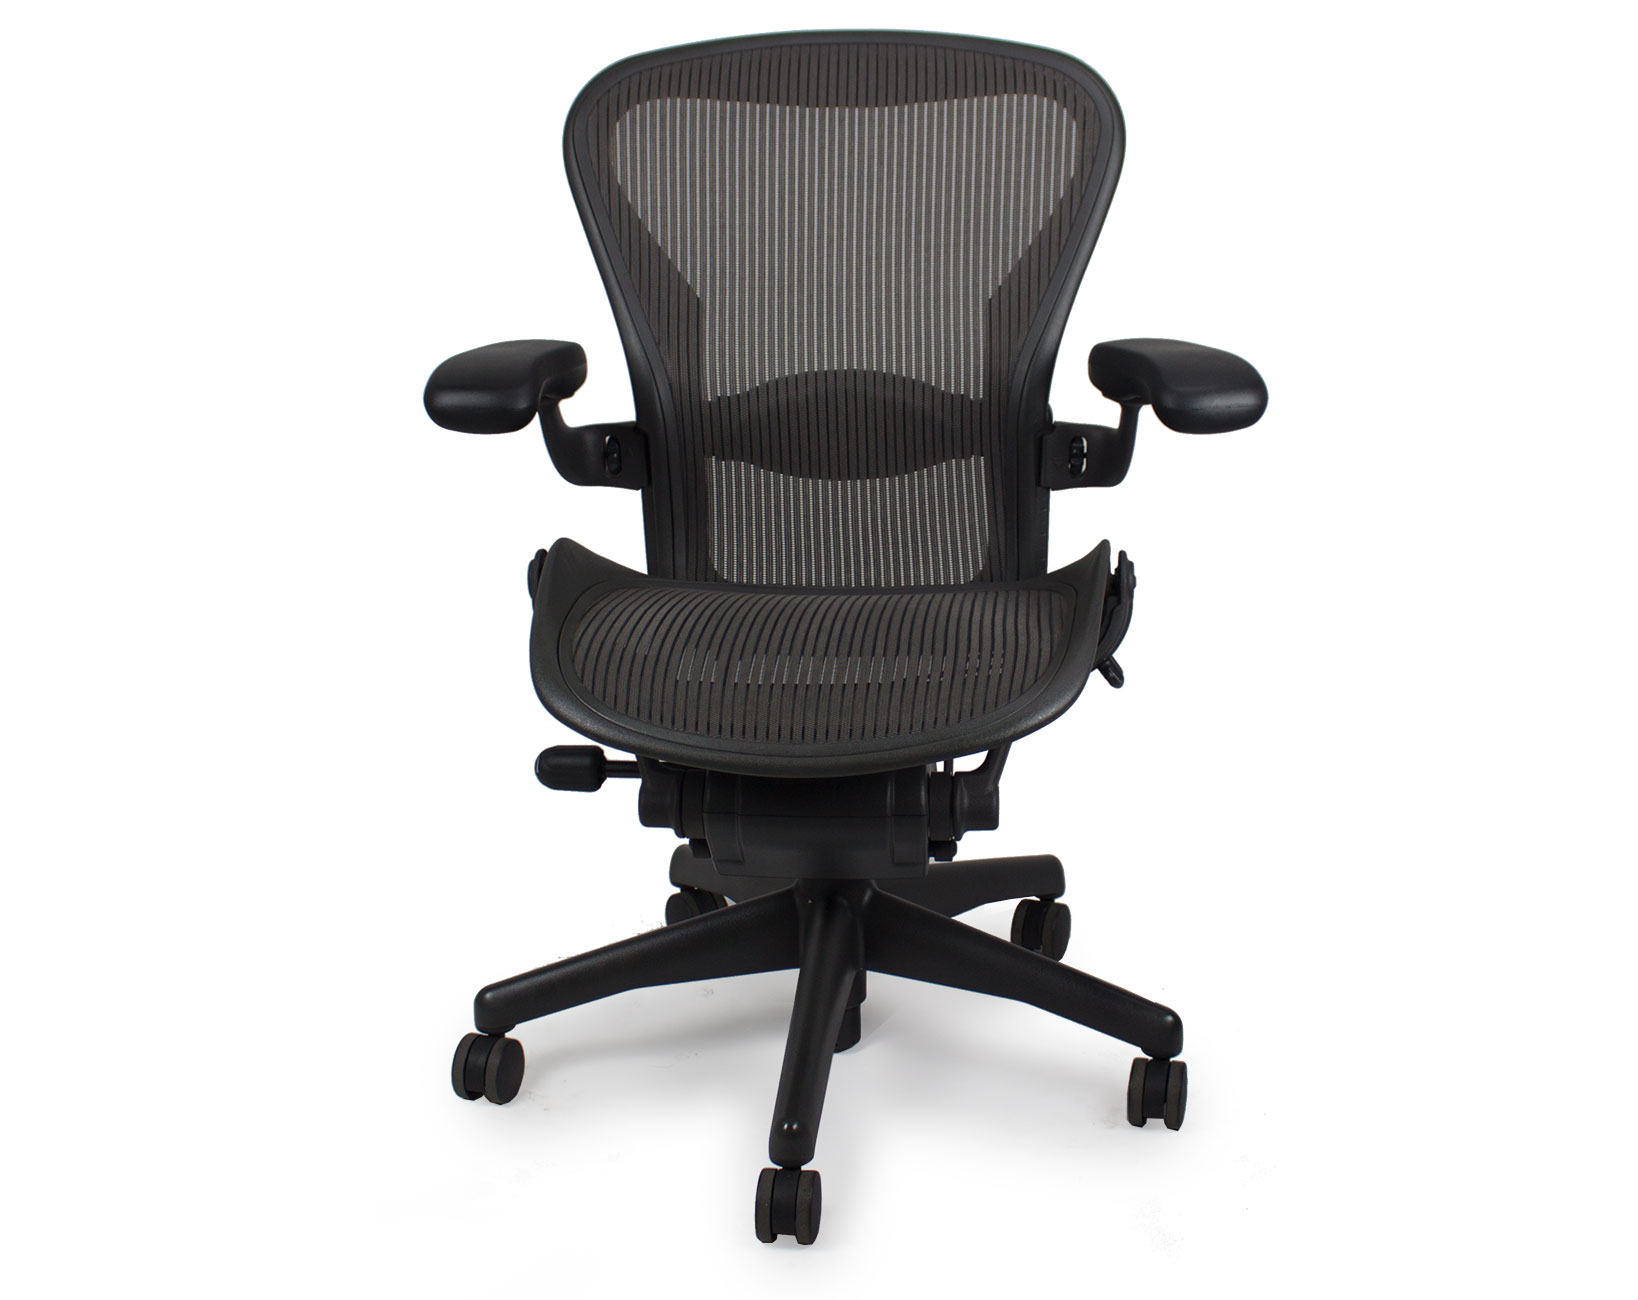 used herman miller aeron chair graphite frame classic. Black Bedroom Furniture Sets. Home Design Ideas